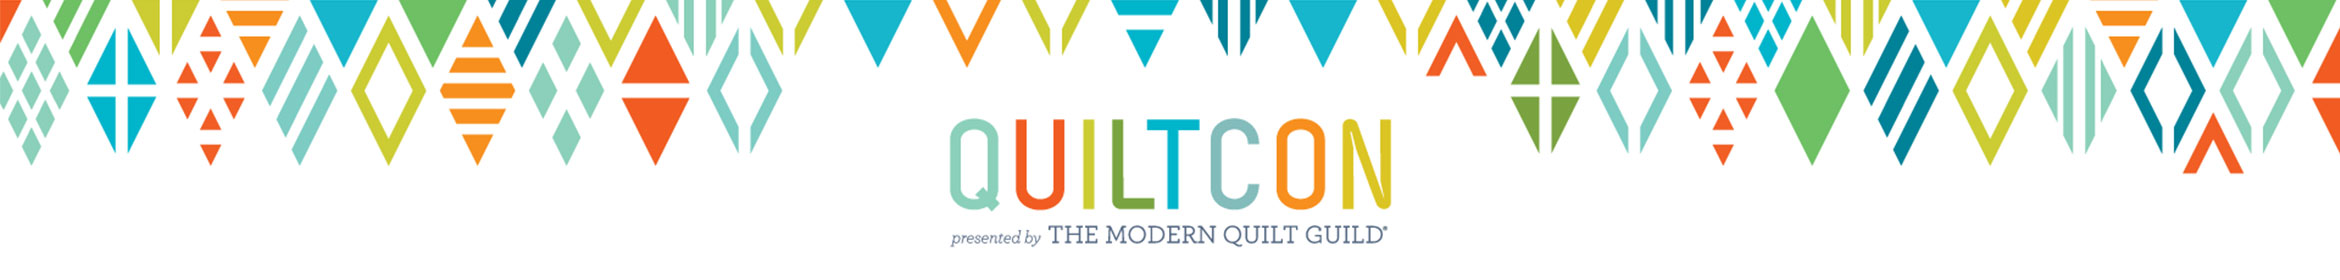 QuiltCon 2018 Main banner